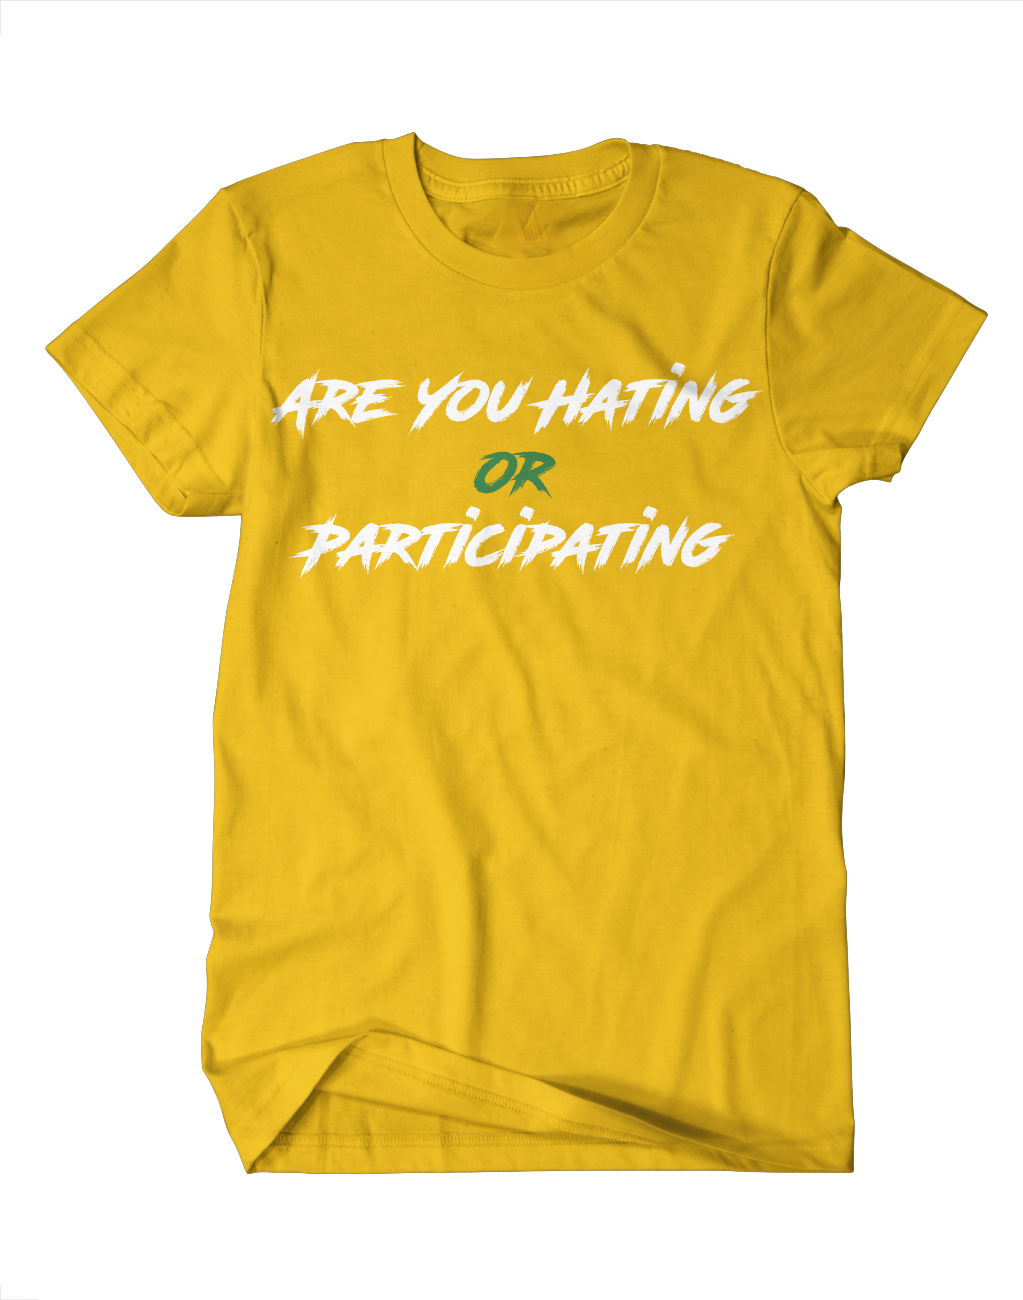 Are You Hating? Or Participating? - Pittsburgh Reverse